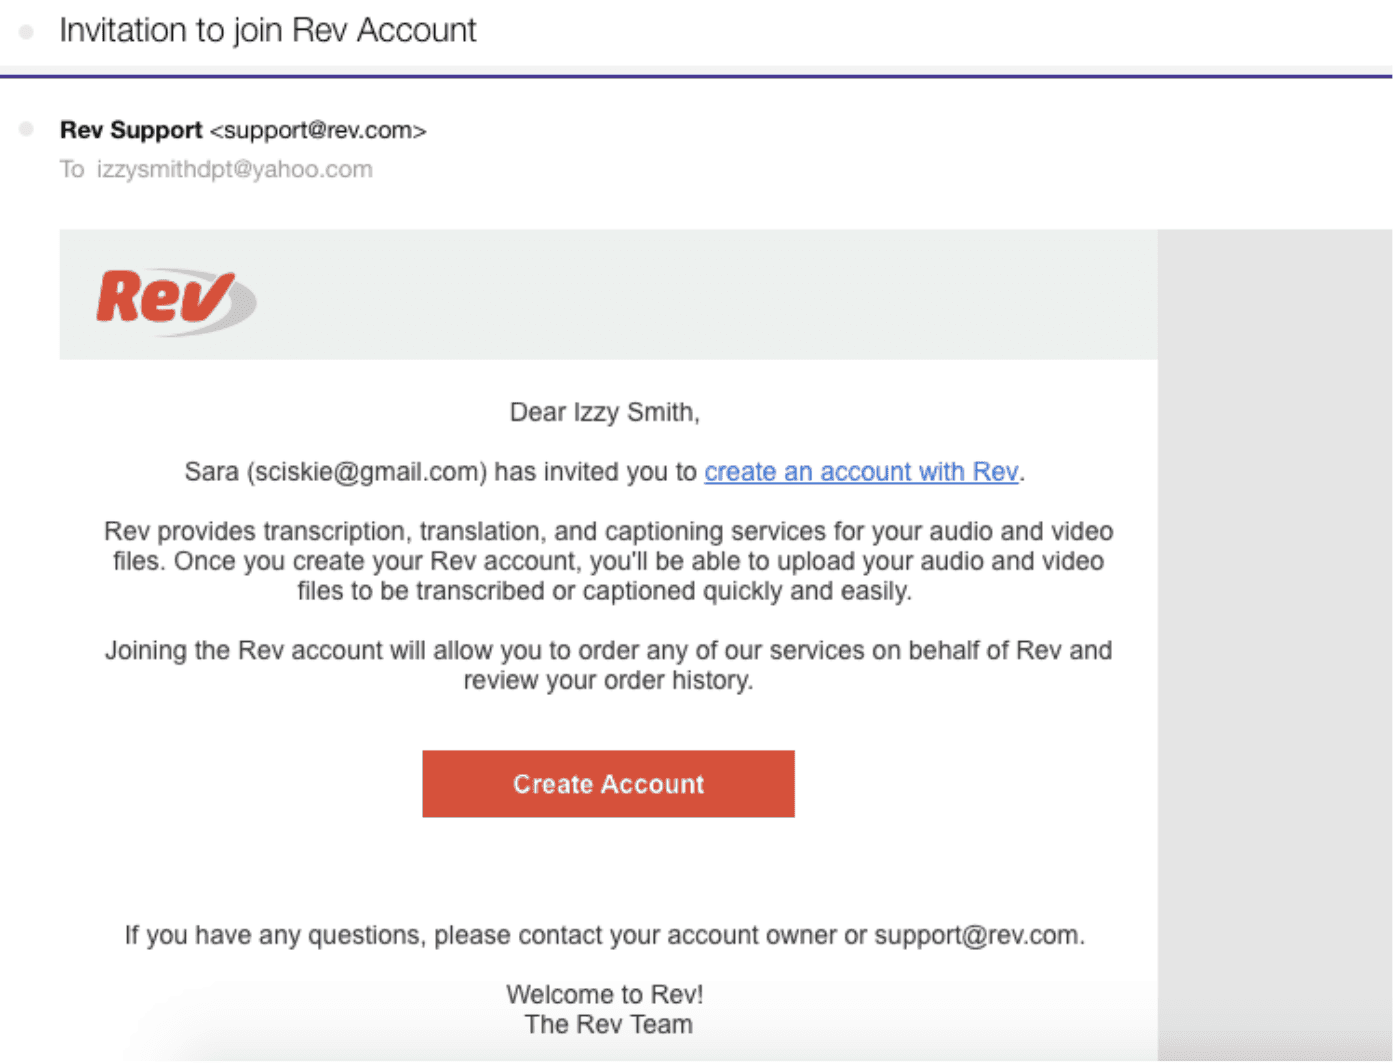 Invitation to join Rev Account email example